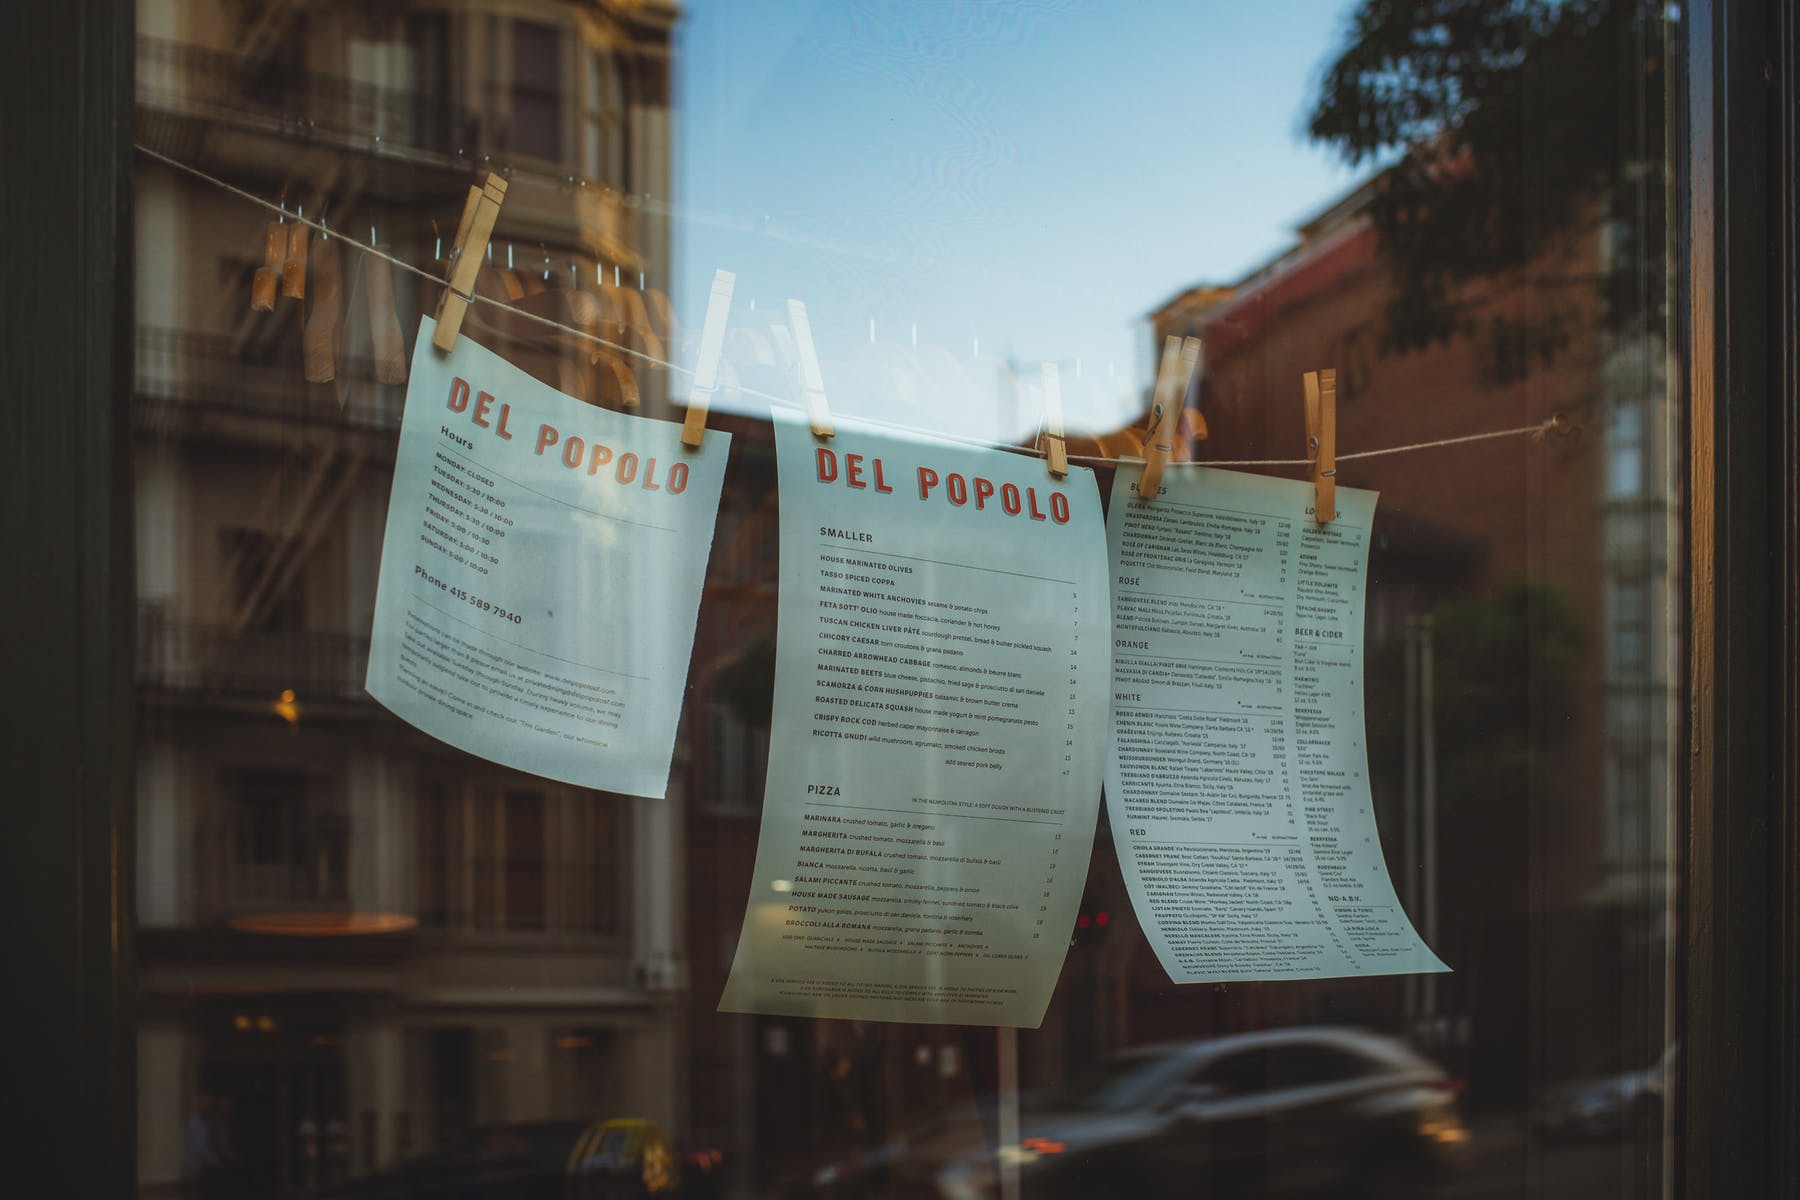 a string with the menus hanging on the restaurant window